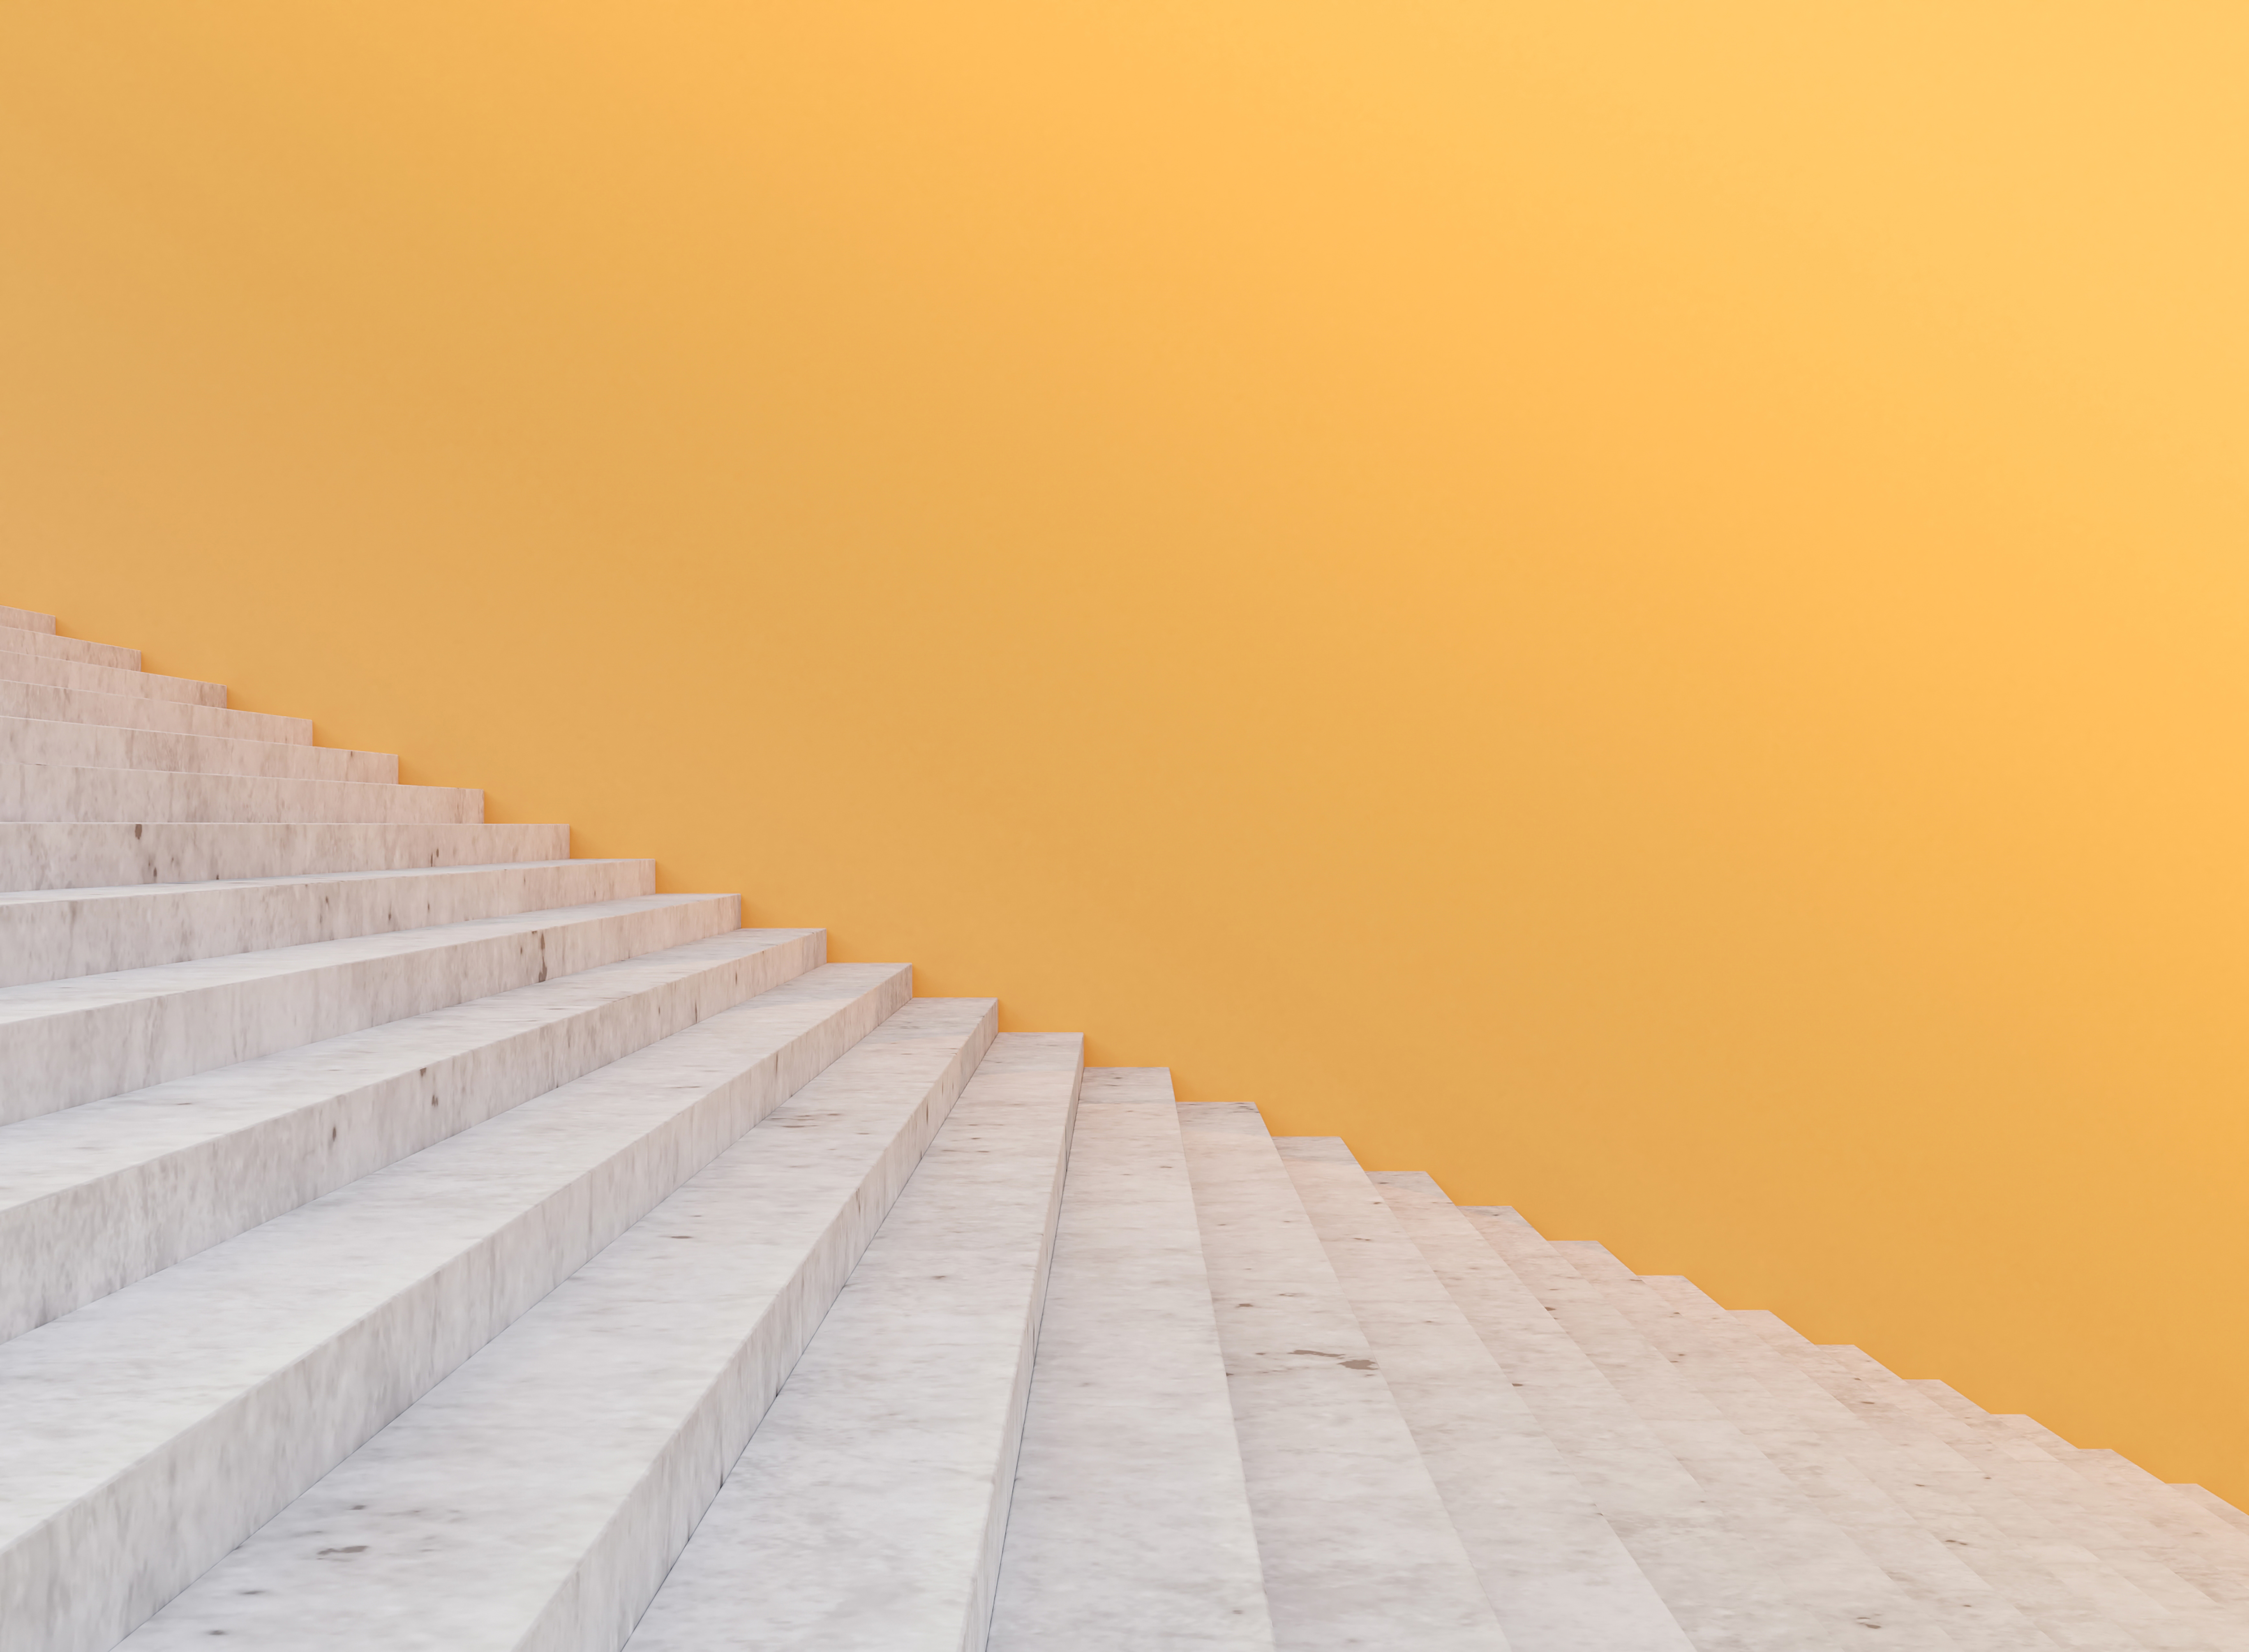 Minimal concrete staircase and yellow wall